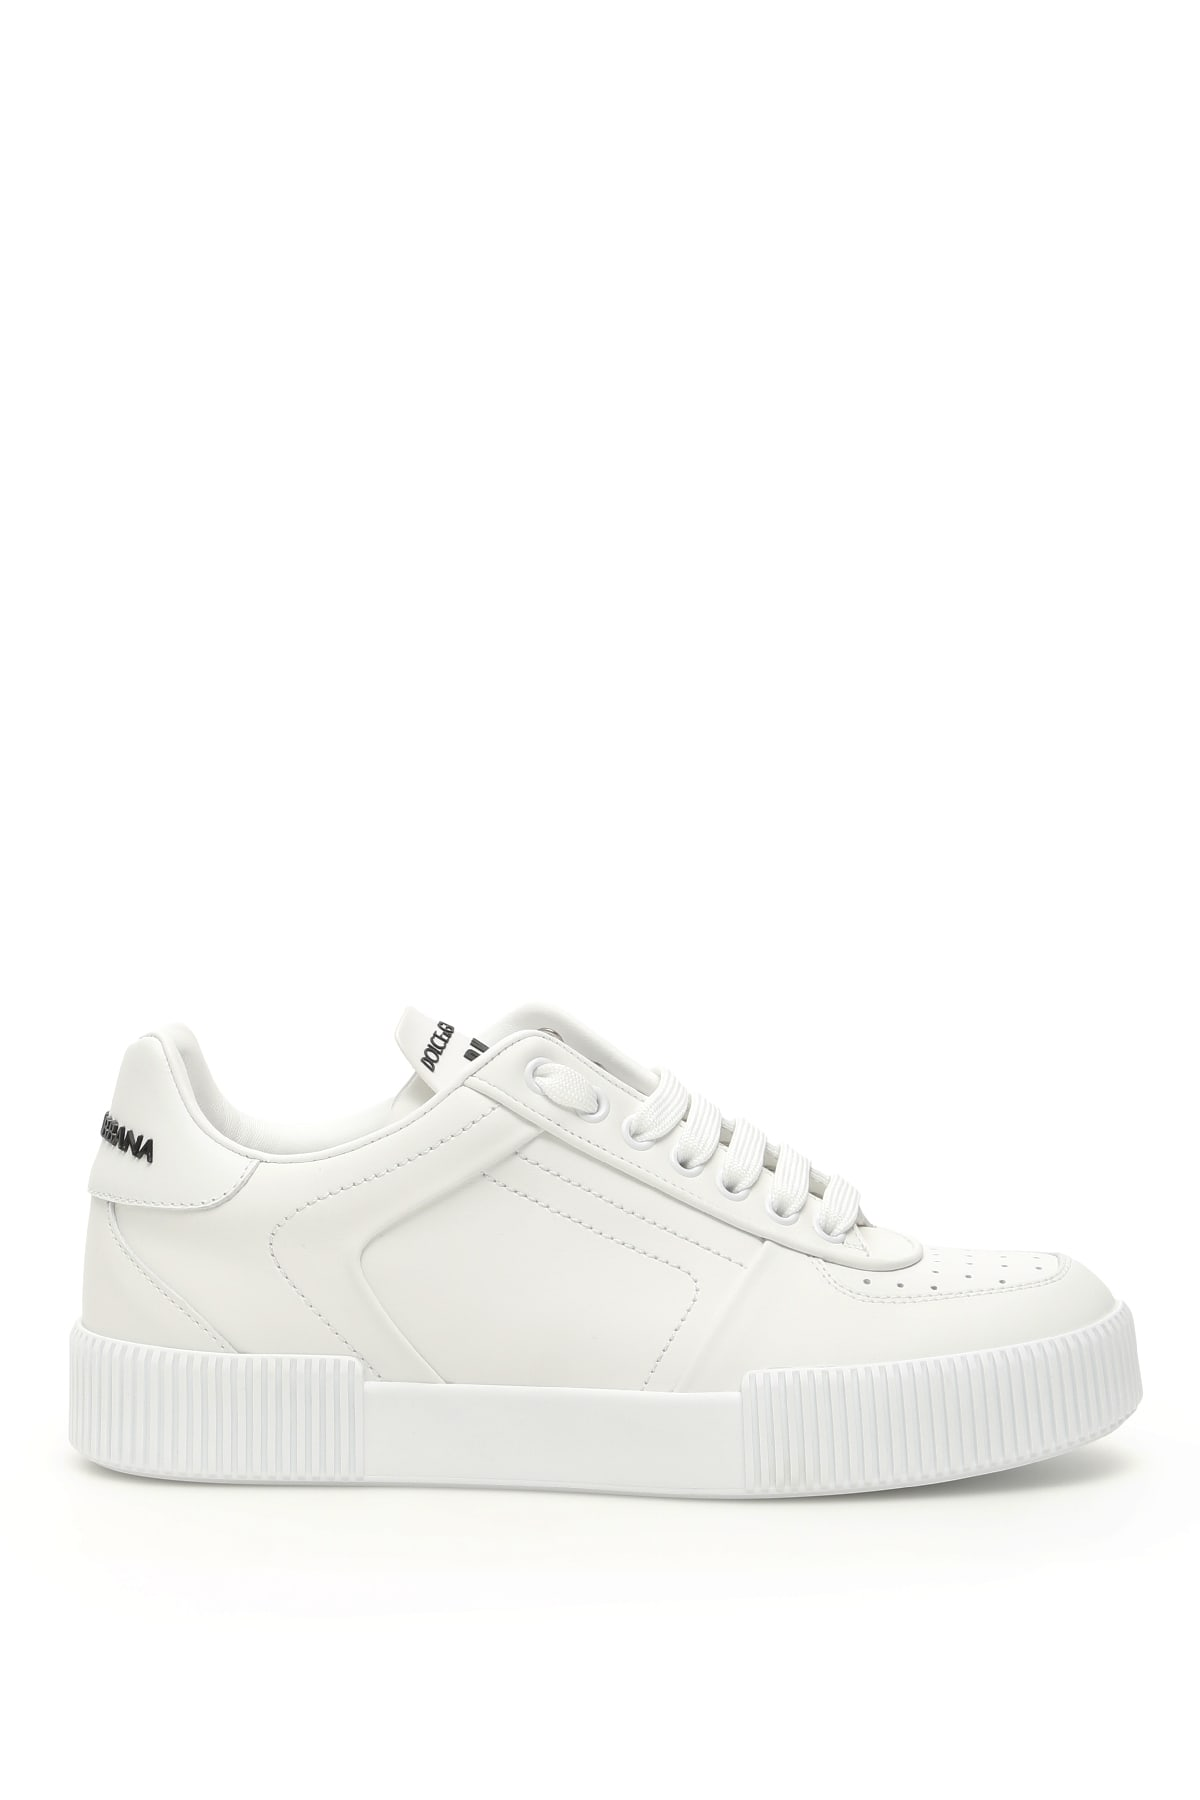 Dolce & Gabbana Low tops MIAMI SNEAKER